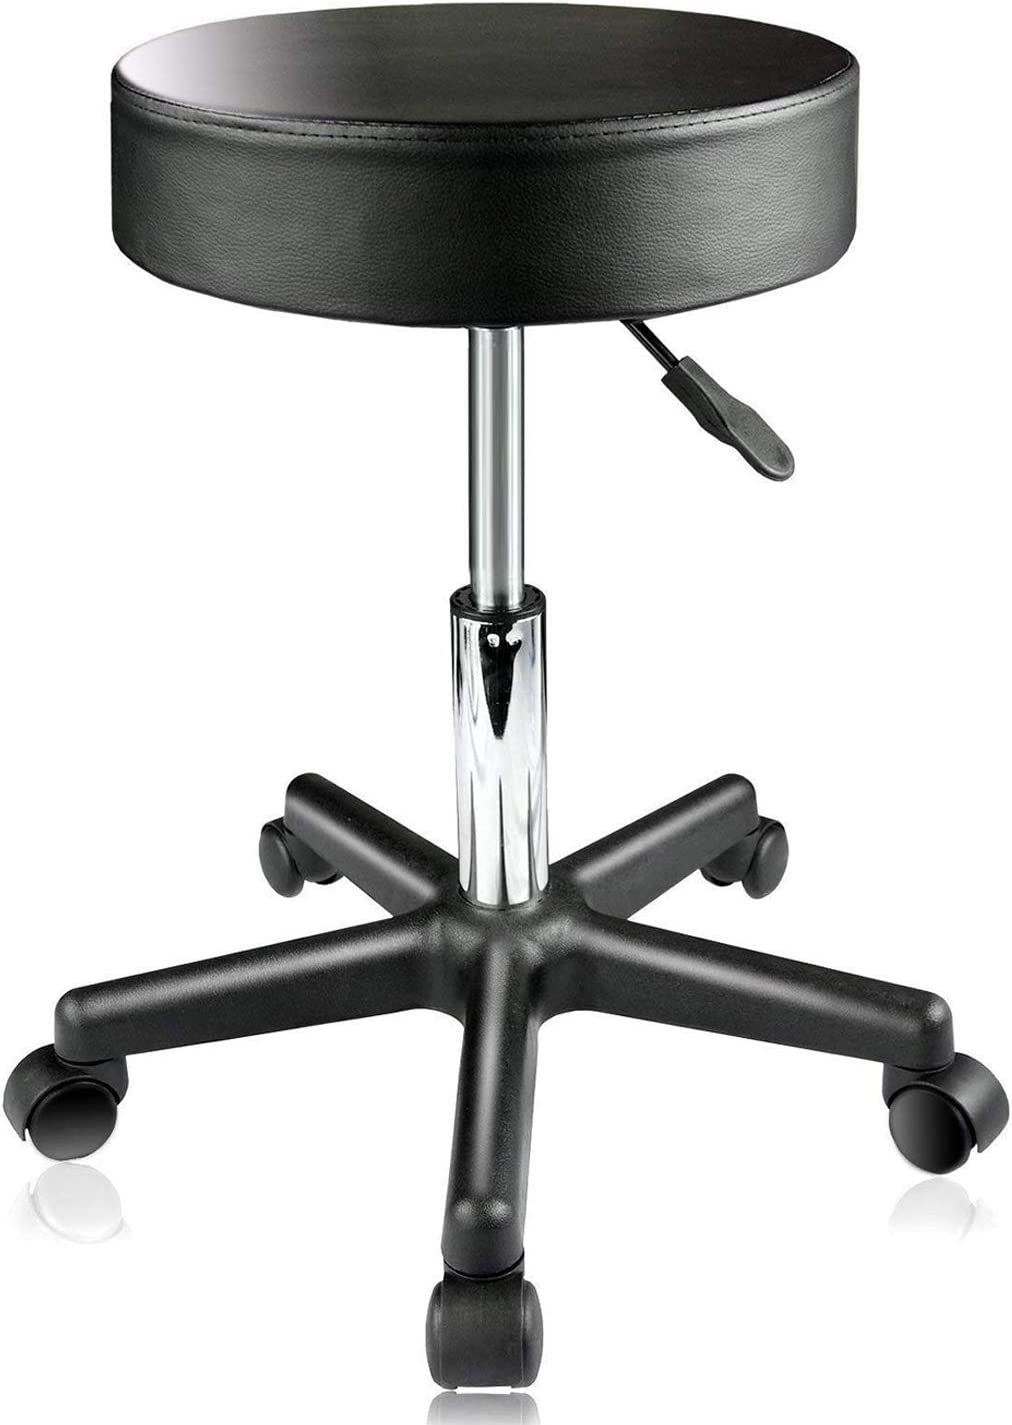 PARTYSAVING Supportive Adjustable Hydraulic Rolling Swivel Stool for Massage and Salon Office Facial Spa Medical Tatoo Chair Cushion & Wheels – Extra Large, APL1159: Kitchen & Dining